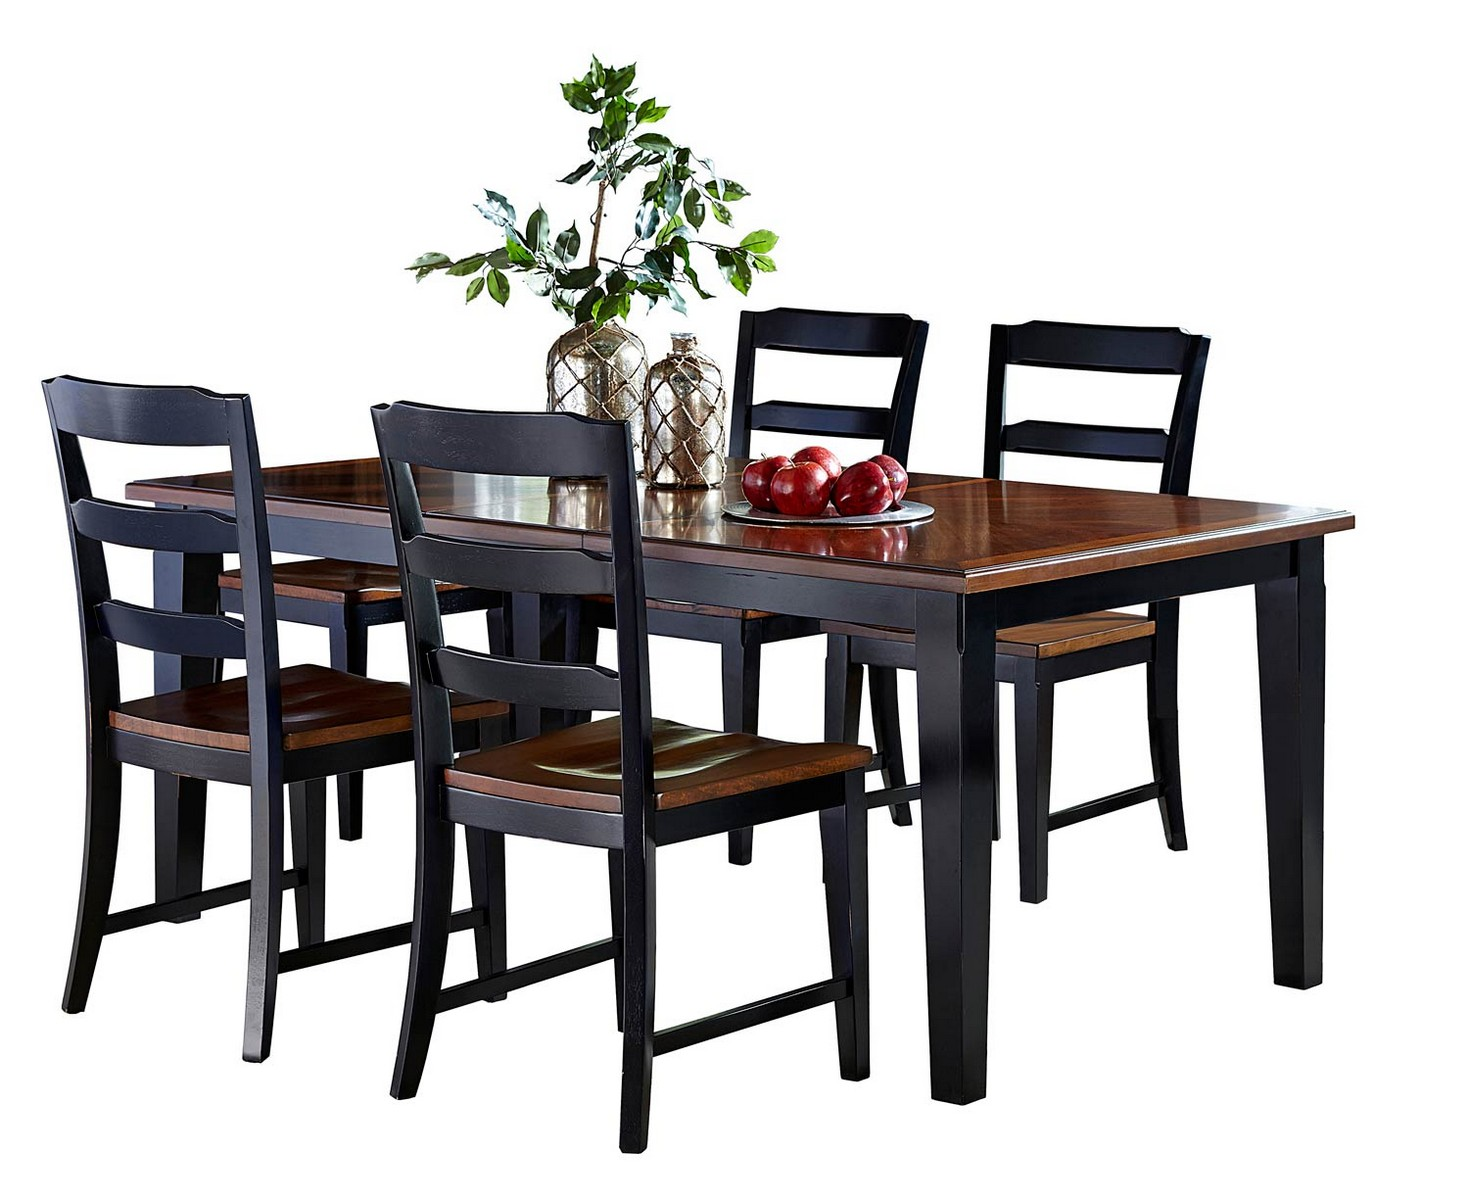 Hillsdale Avalon 5 Pc Dining Set Black Cherry 5505dtbc